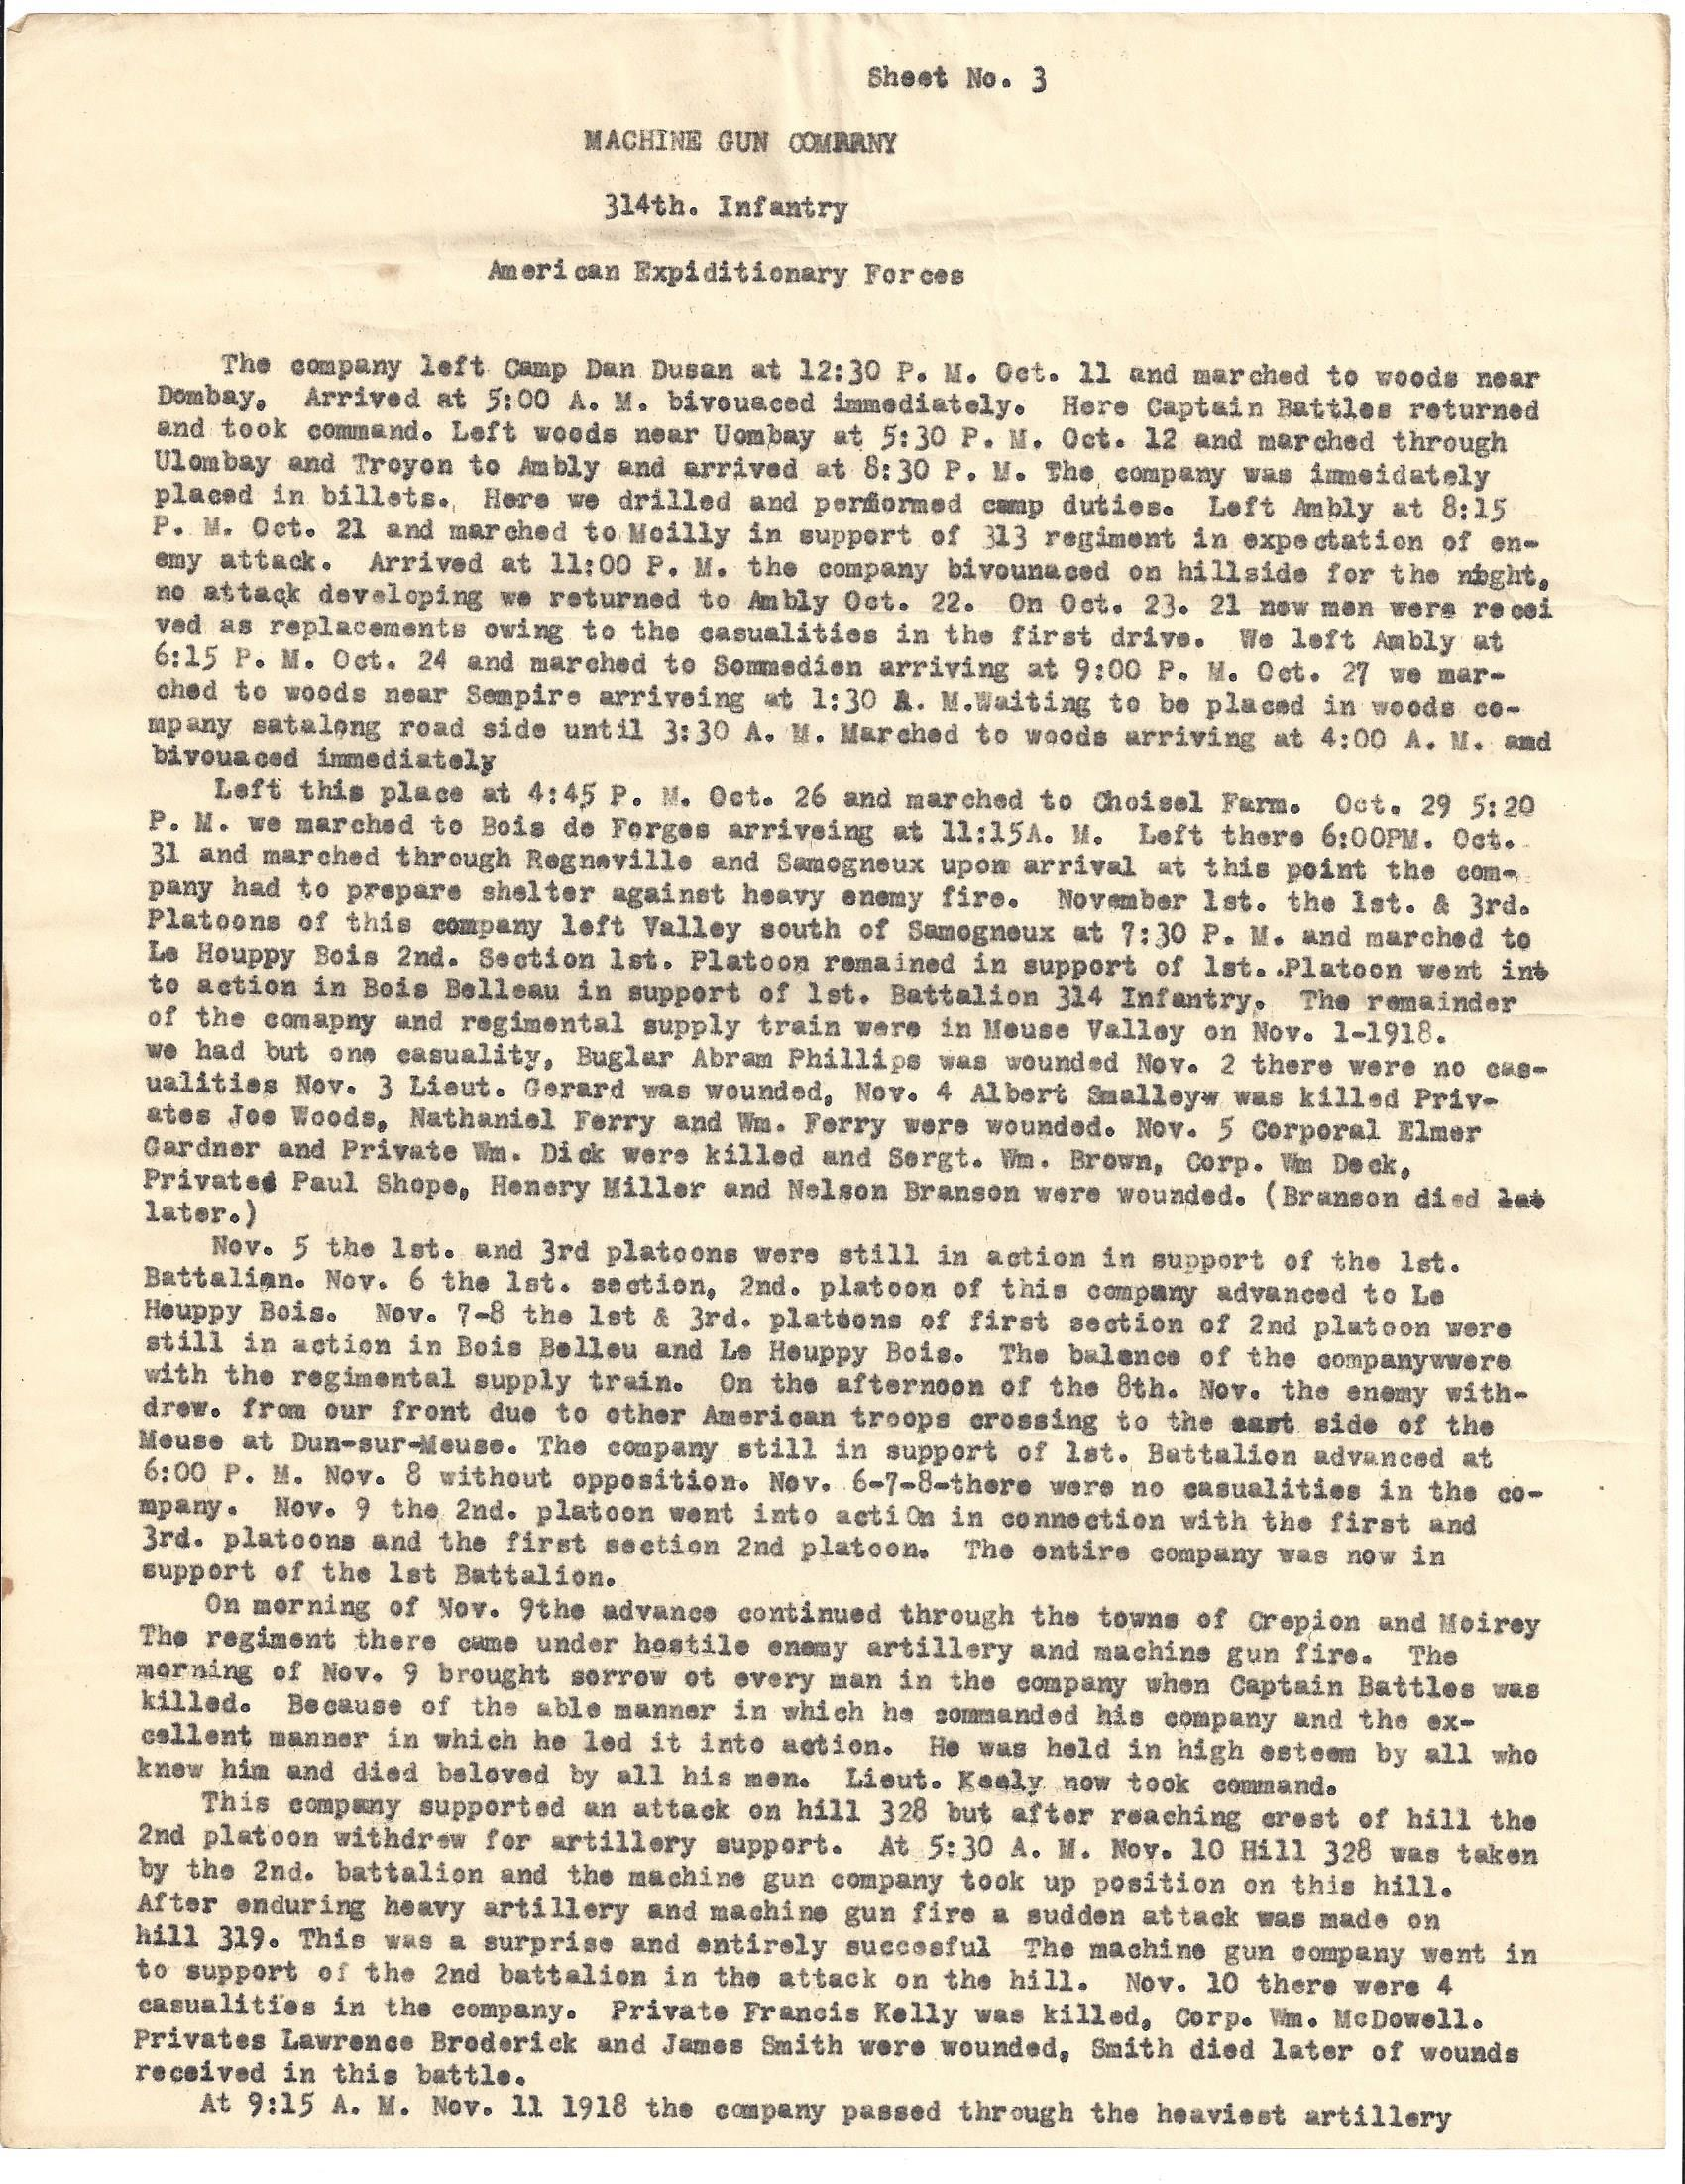 MG Company 314th Infantry AEF typewritten history page 3